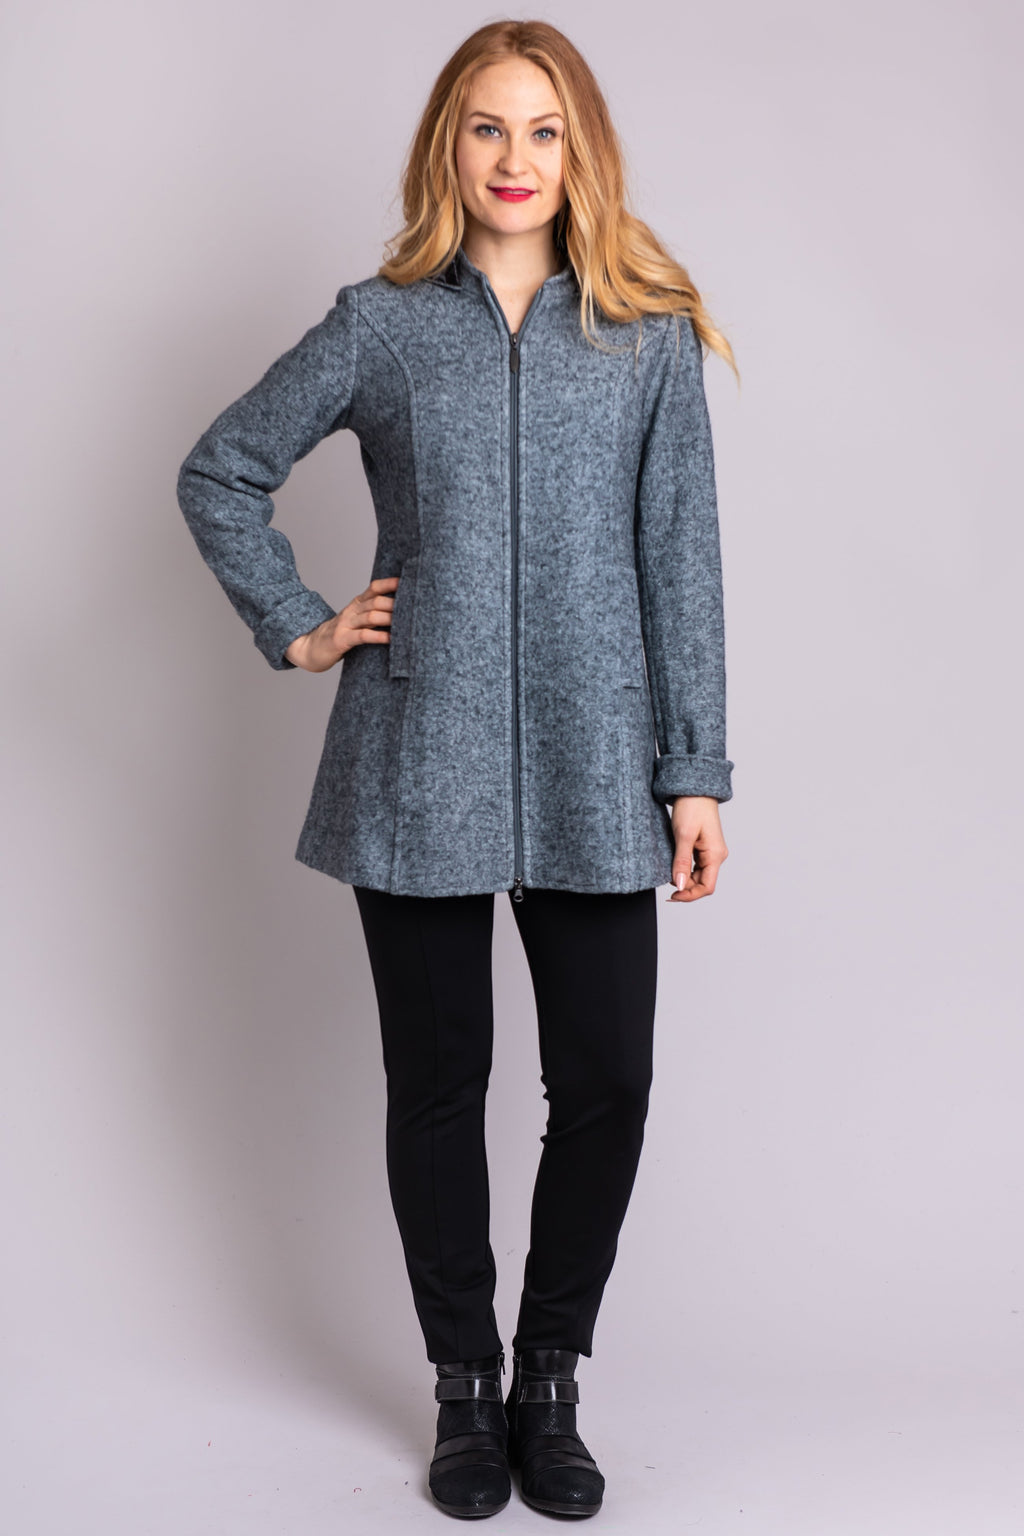 Pender Coat, Pearl Grey - Blue Sky Clothing Co